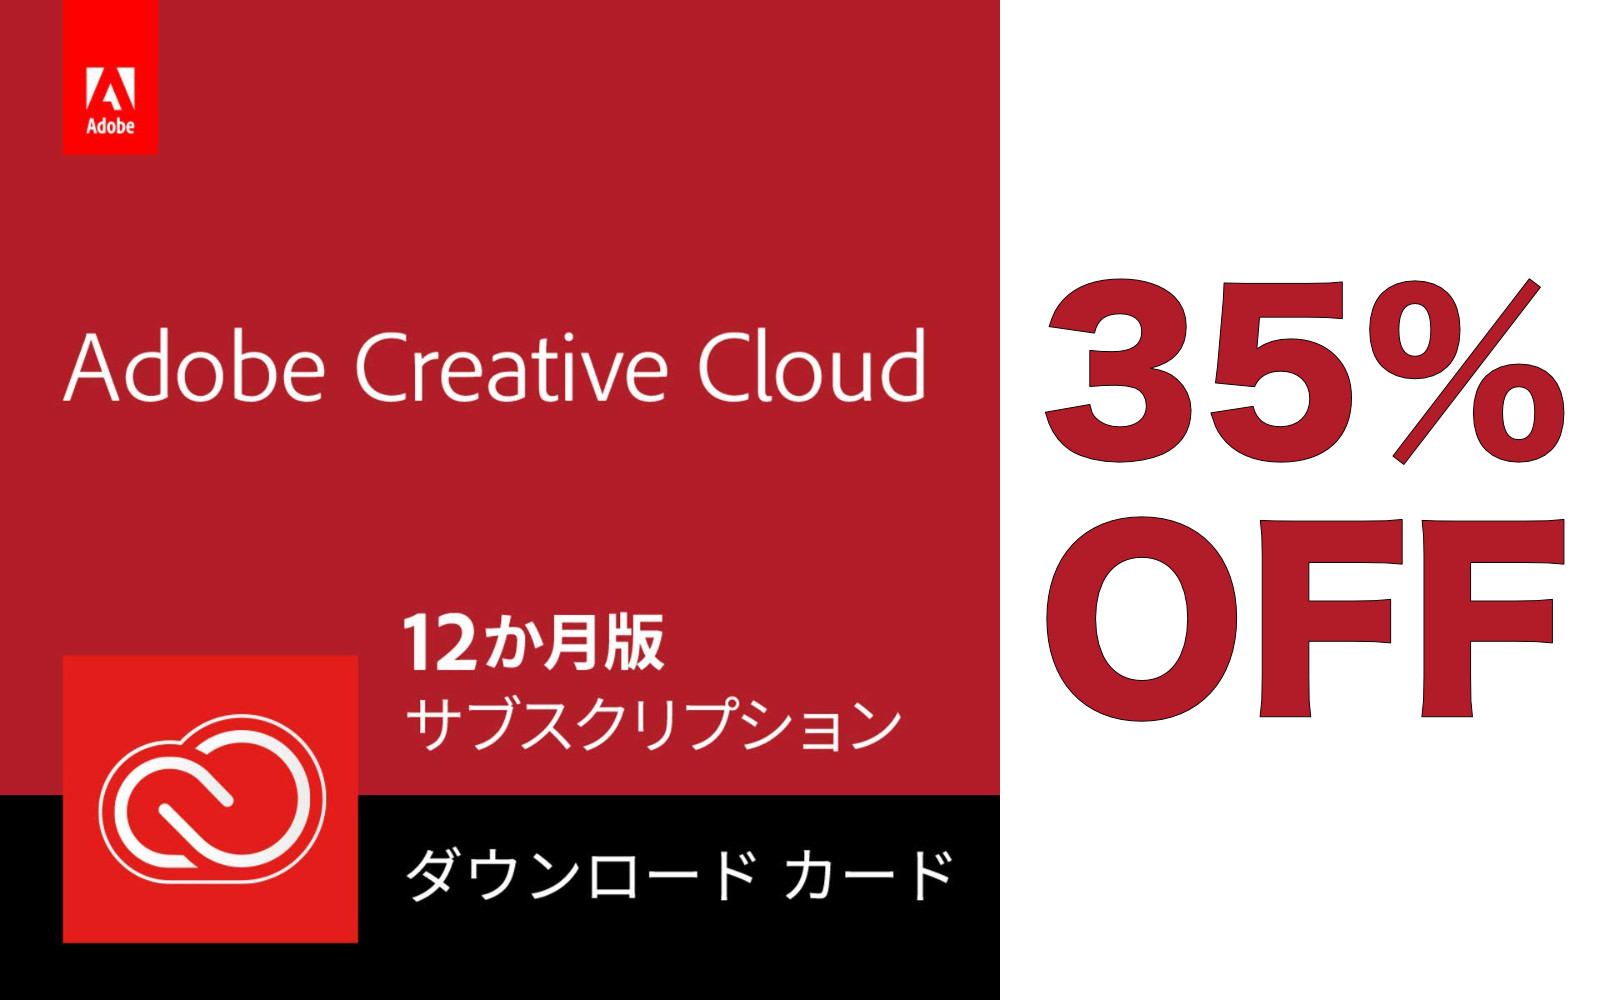 Adobe Creative Cloud 35percent off